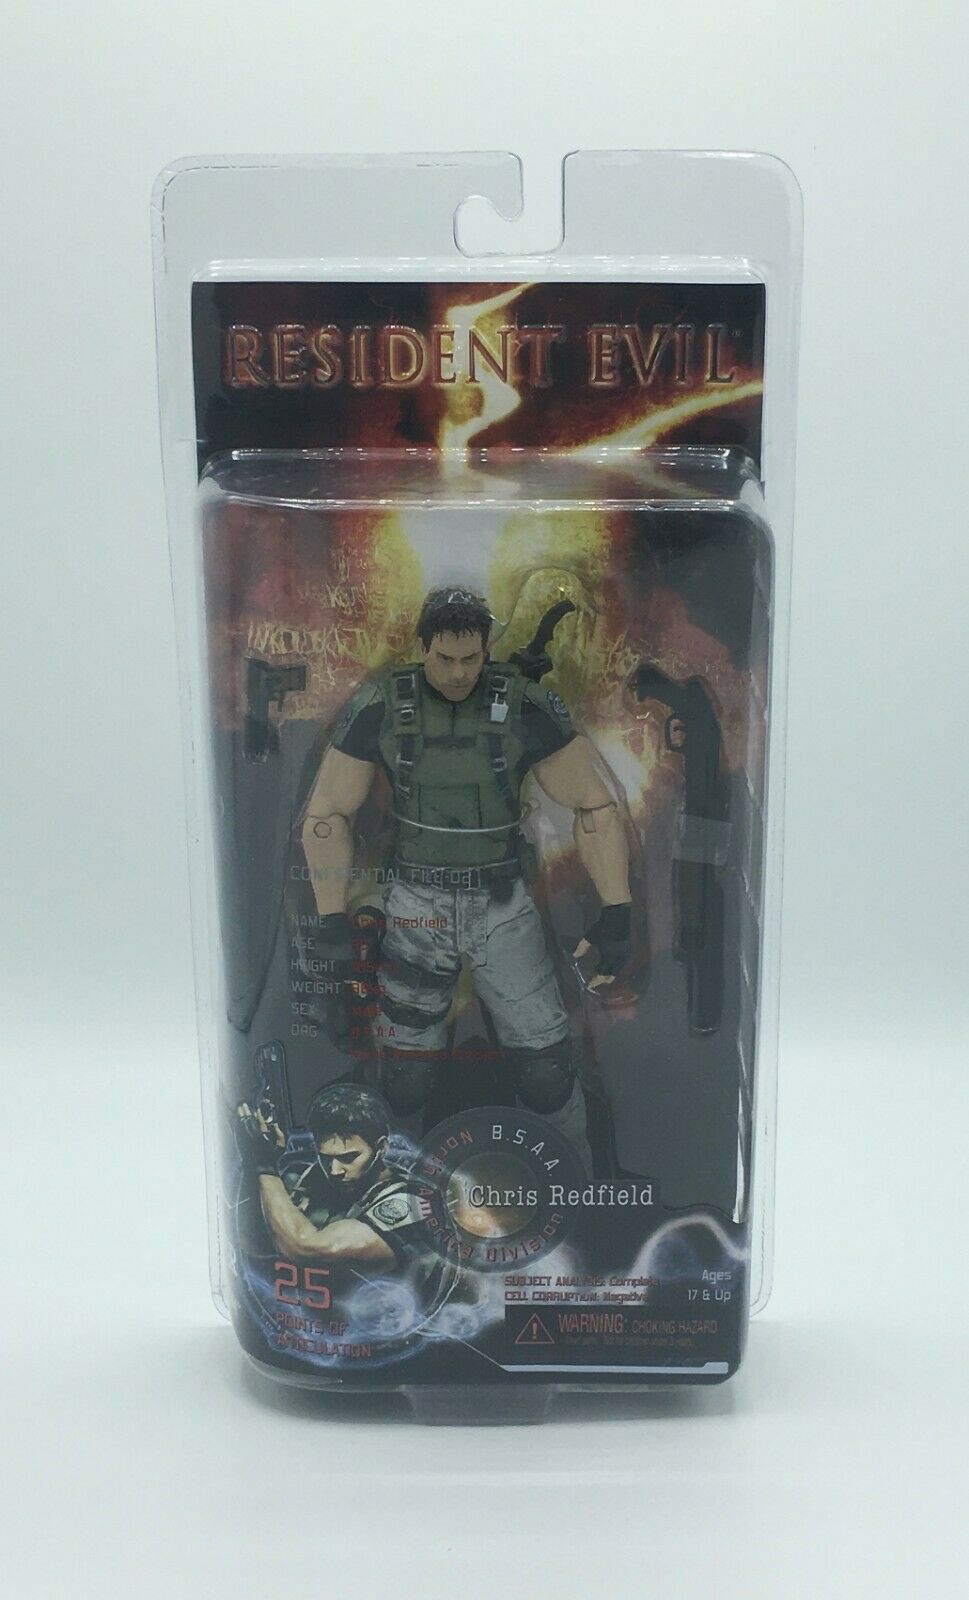 Resident Evil 5 Action Figure - Chris rotfield - New, Unopened